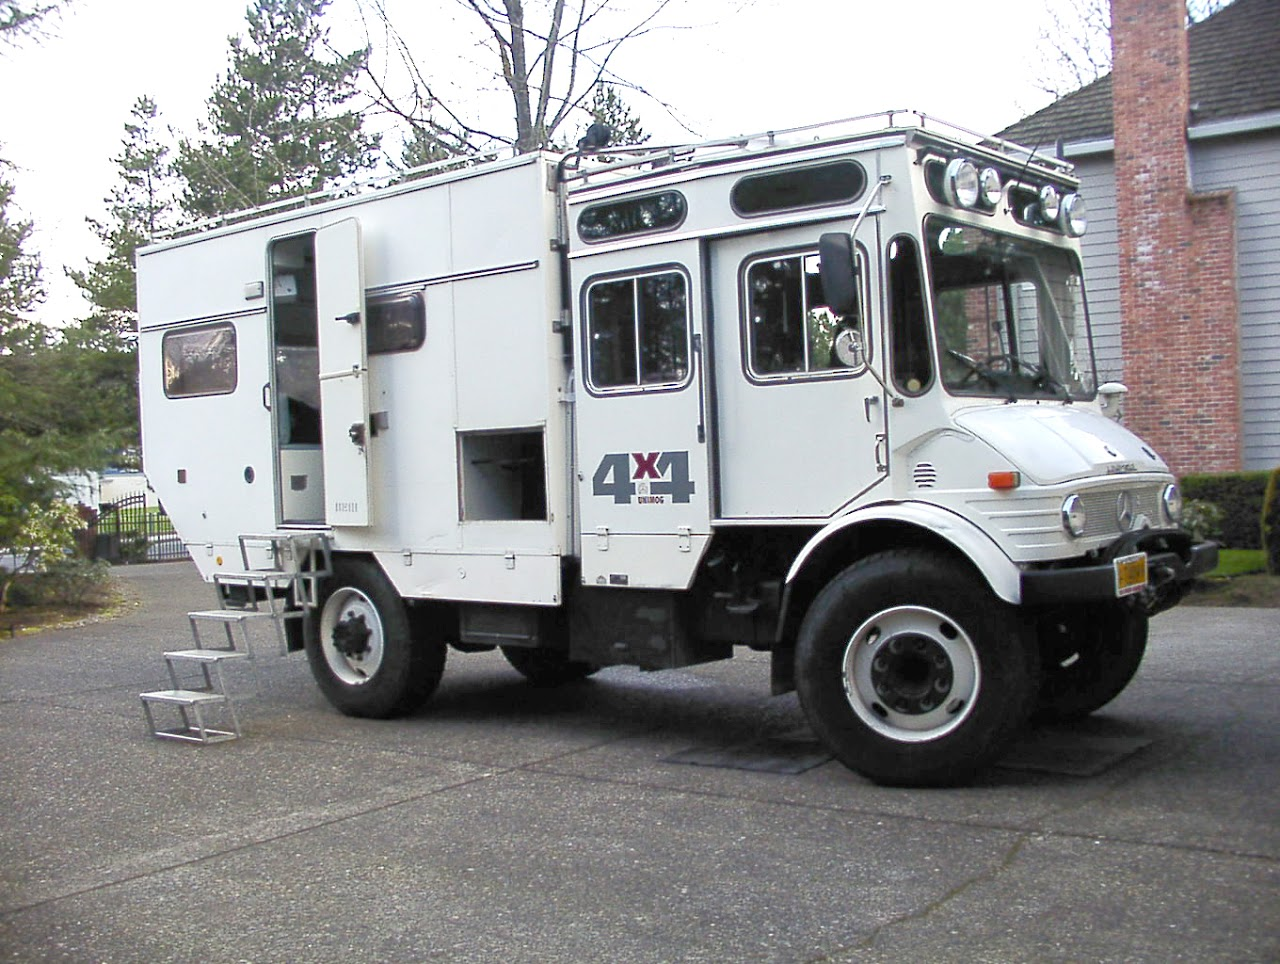 Rv For Sale Near Me >> Spotted: Unimog 416-Based 4×4 Camper // West County Explorers Club